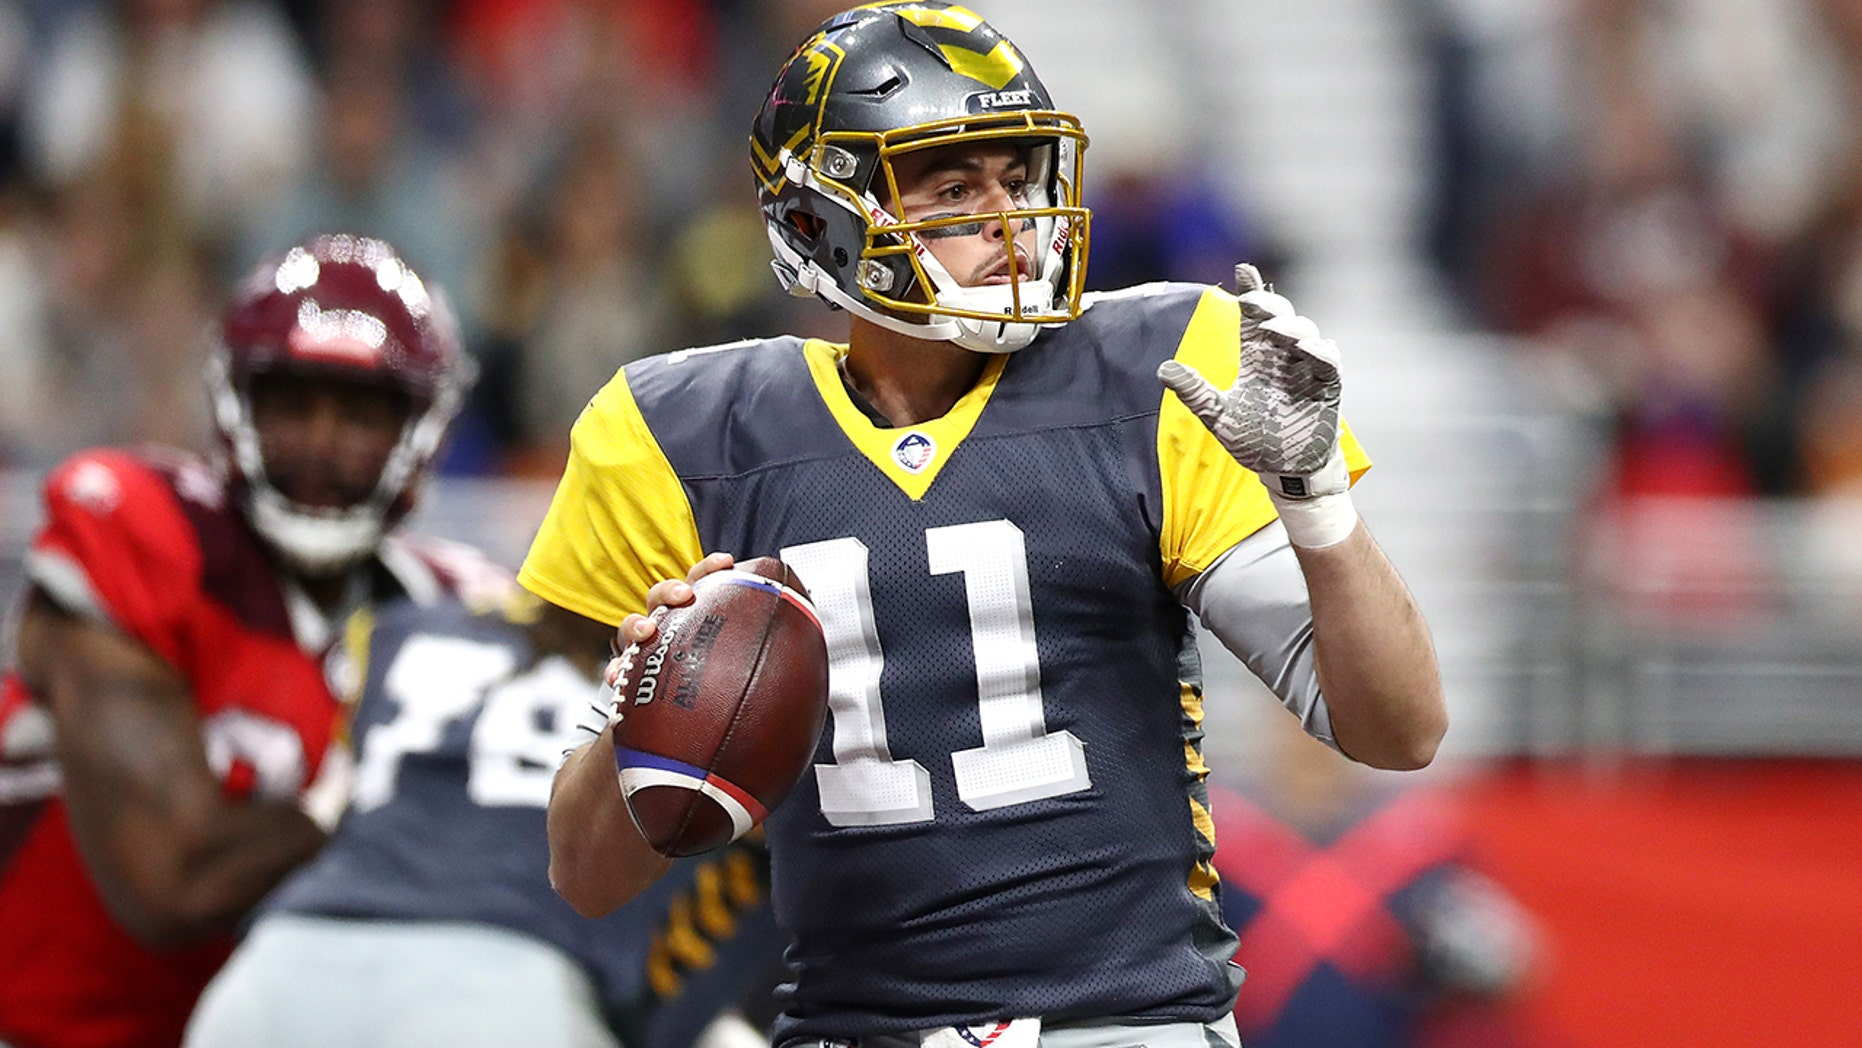 MikeBercovici #11 of the San Diego Fleet looks to pass the ball during the first half against the the San Antonio Commanders in an Alliance of American Football game at the Alamodome on February 09, 2019 in San Antonio, Texas.